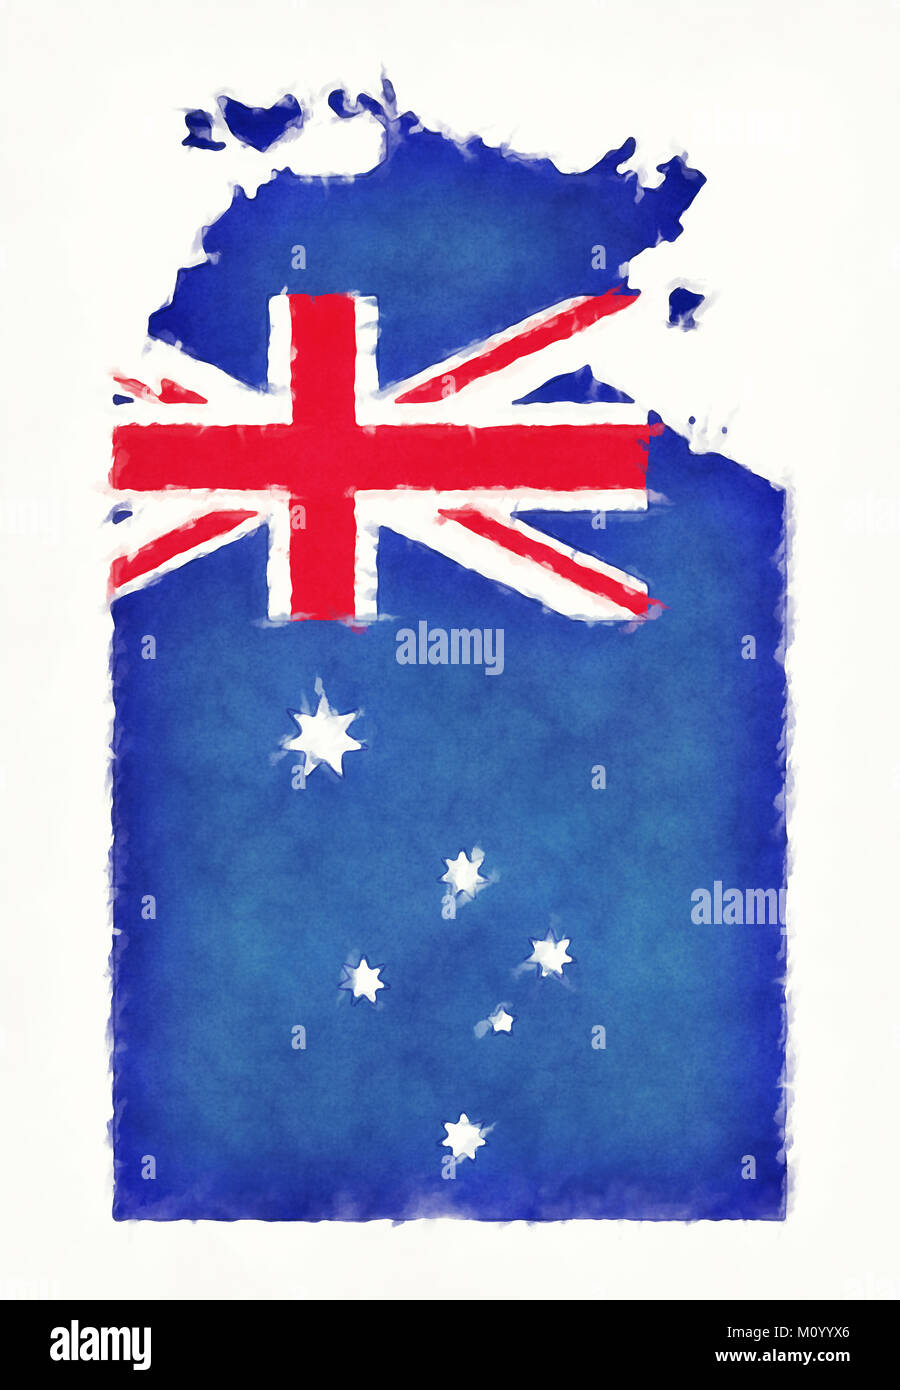 Northern territory flag stock photos northern territory flag northern territory watercolor map with australian national flag in front of a white background stock biocorpaavc Choice Image